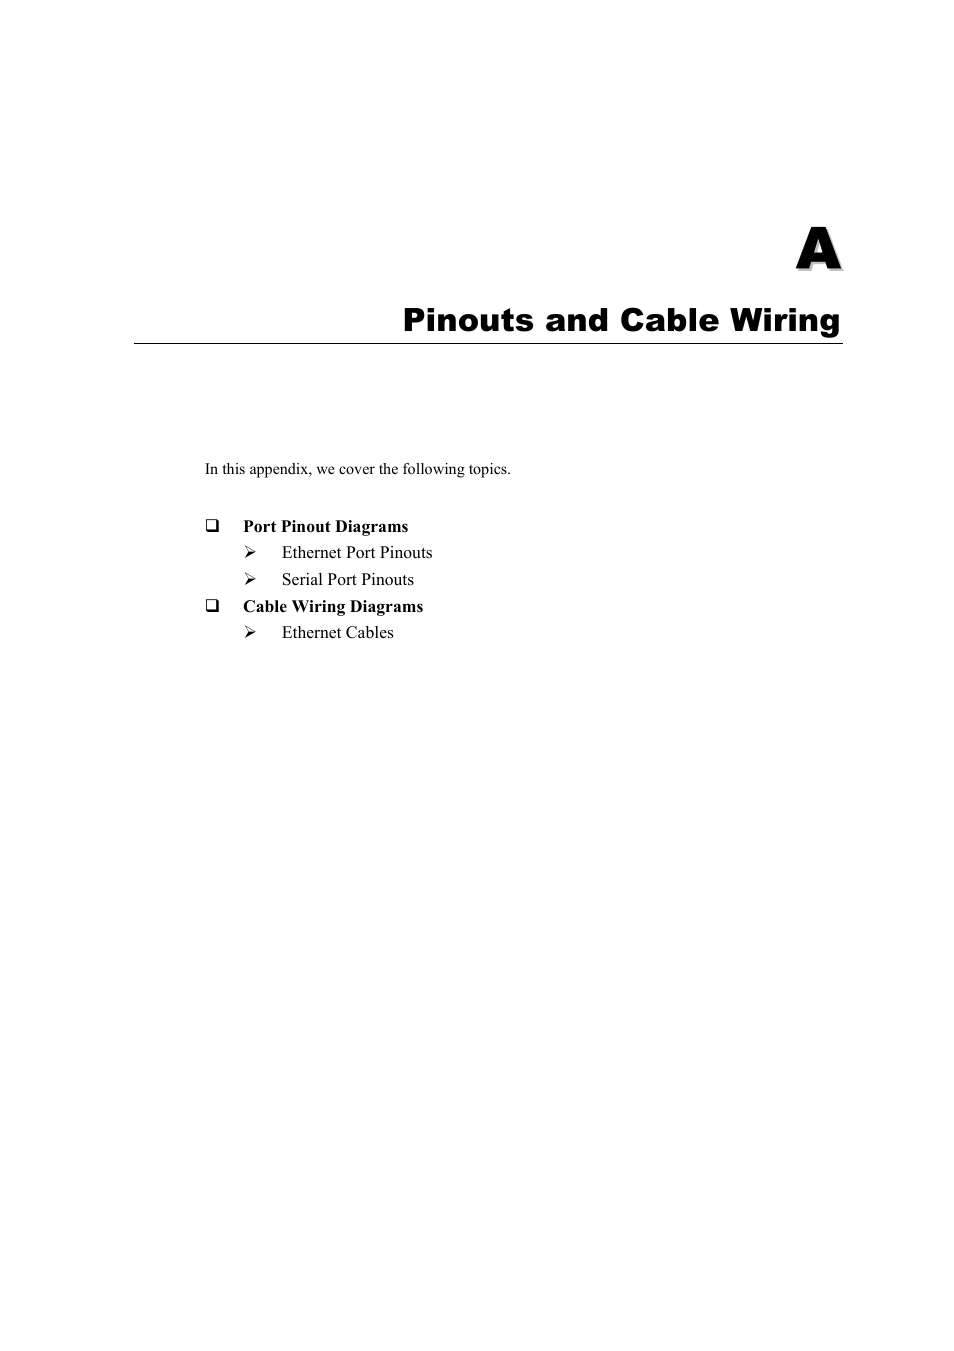 hight resolution of a pinouts and cable wiring appendix a pinouts and cable wiring moxa technologies nport 5110 series user manual page 86 101